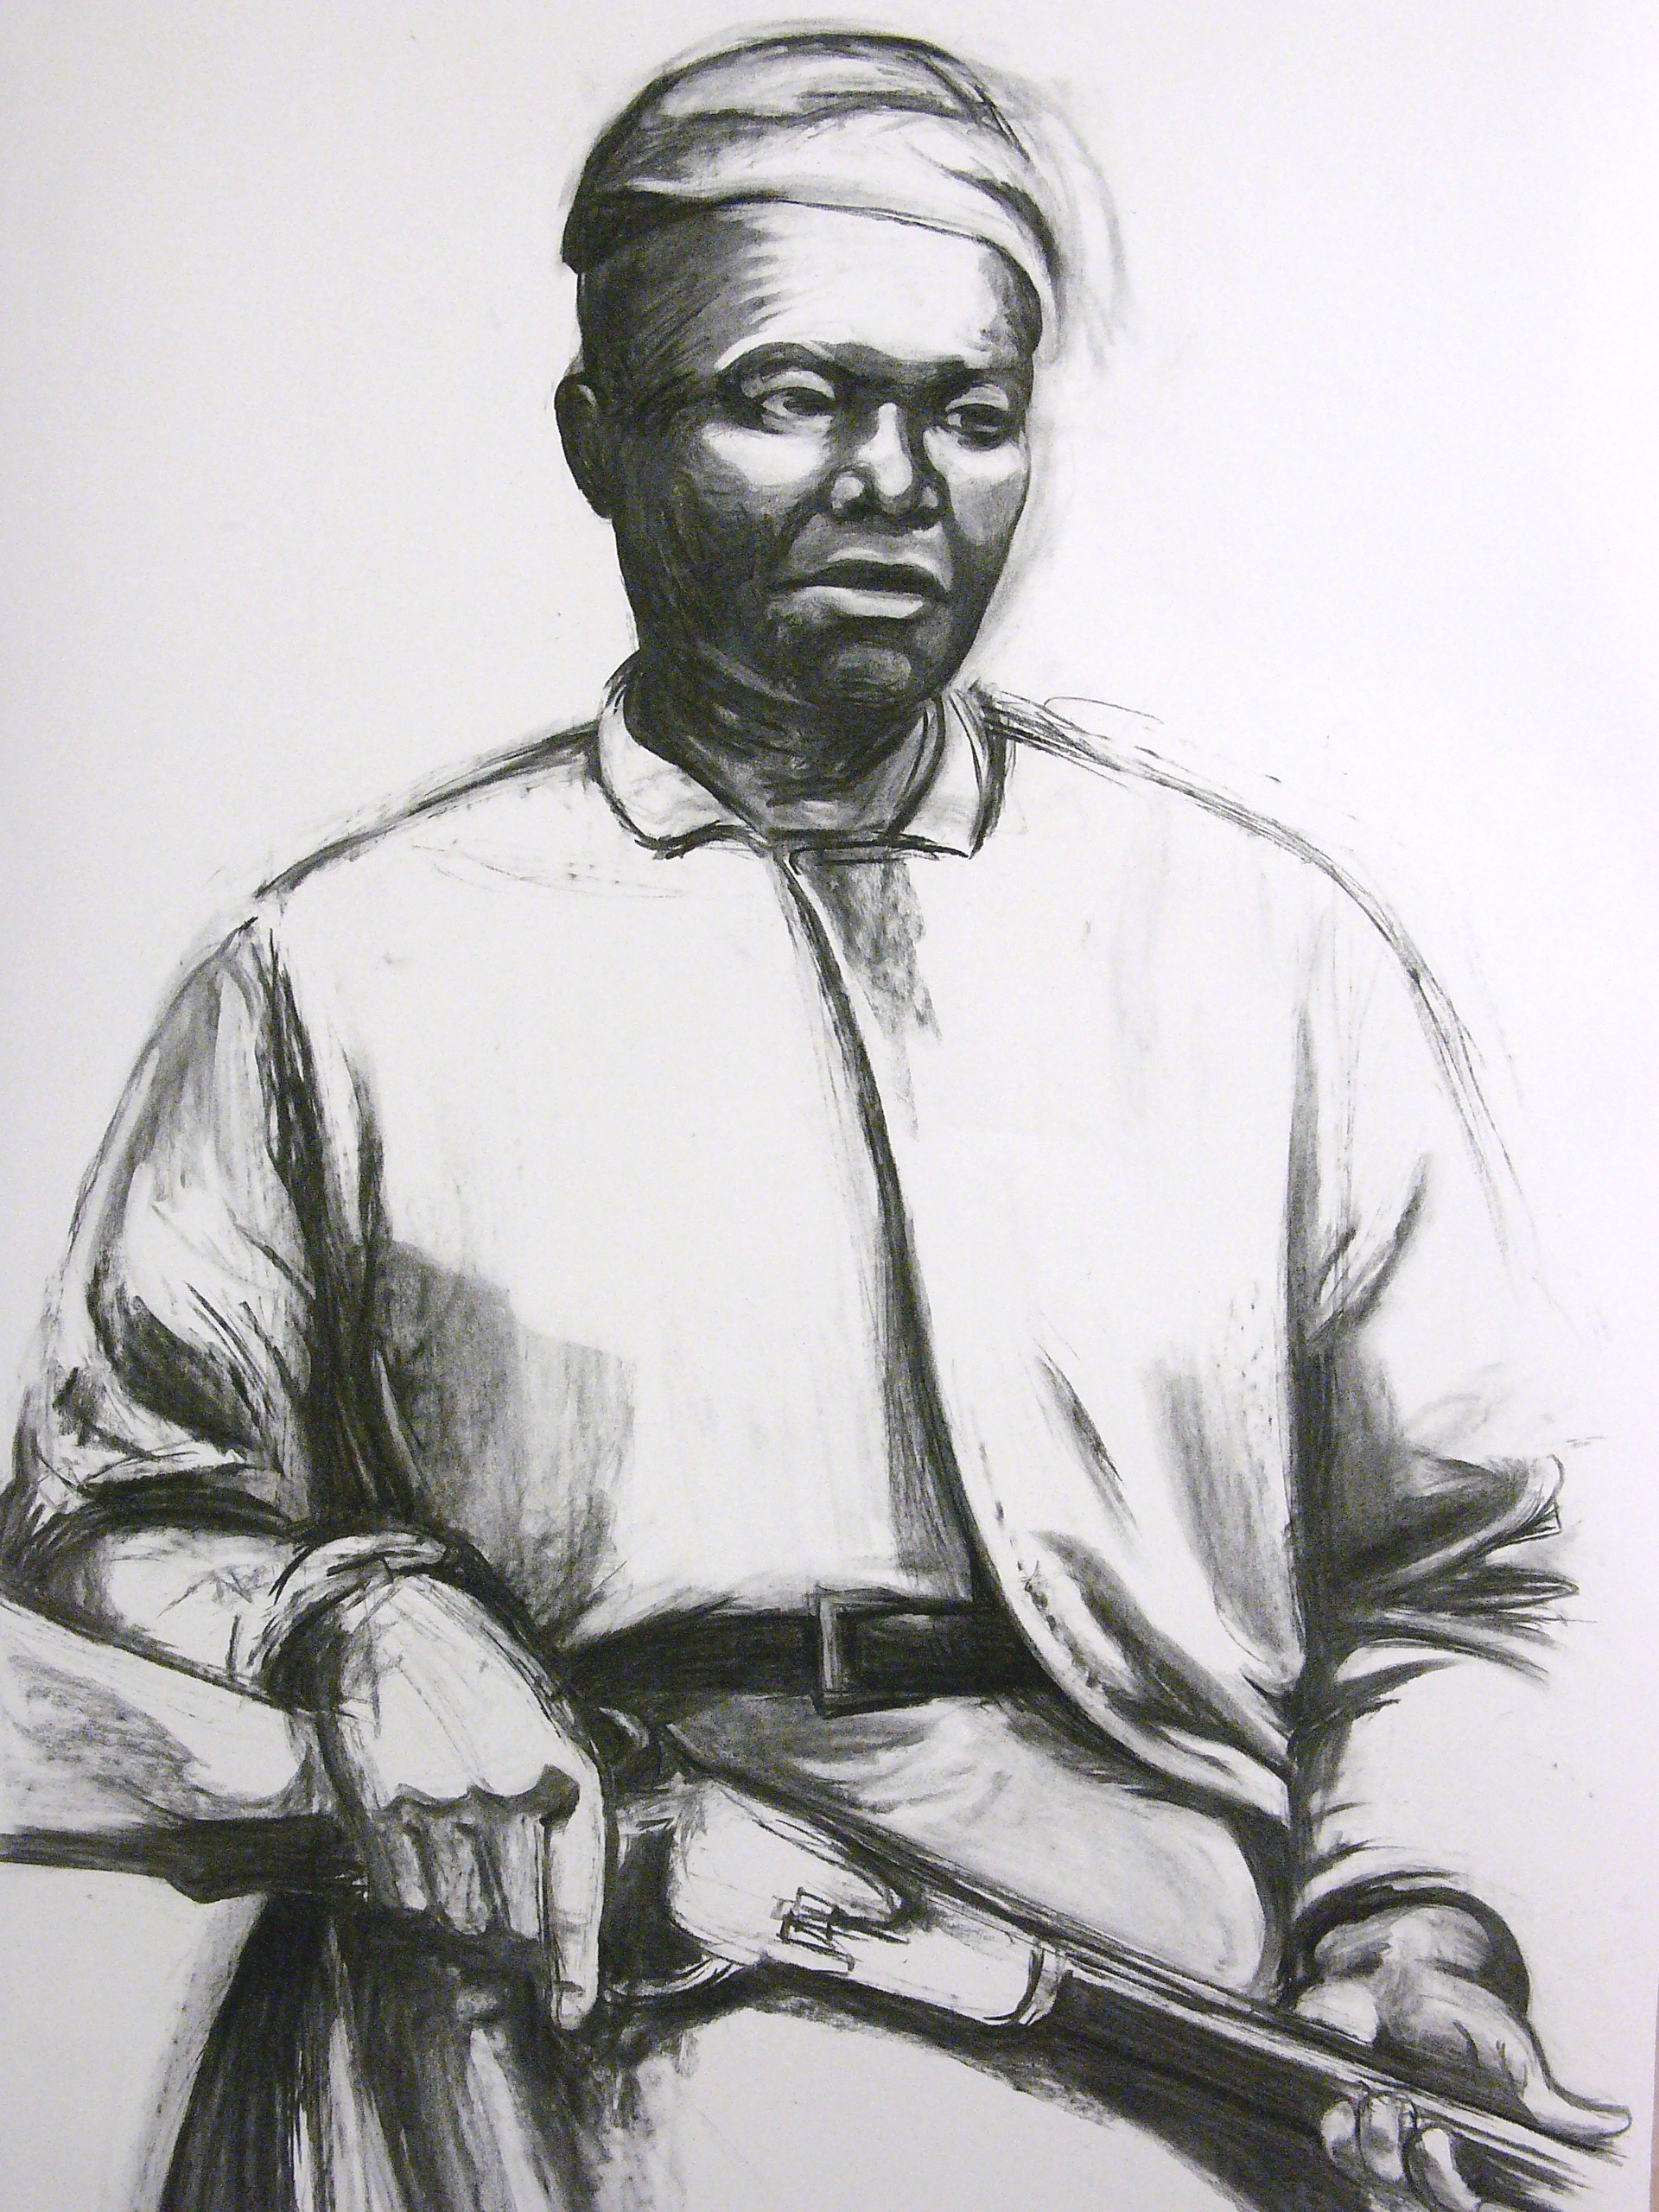 mary fields (detail), 2005  Vine charcoal on paper  92 x 31 inches